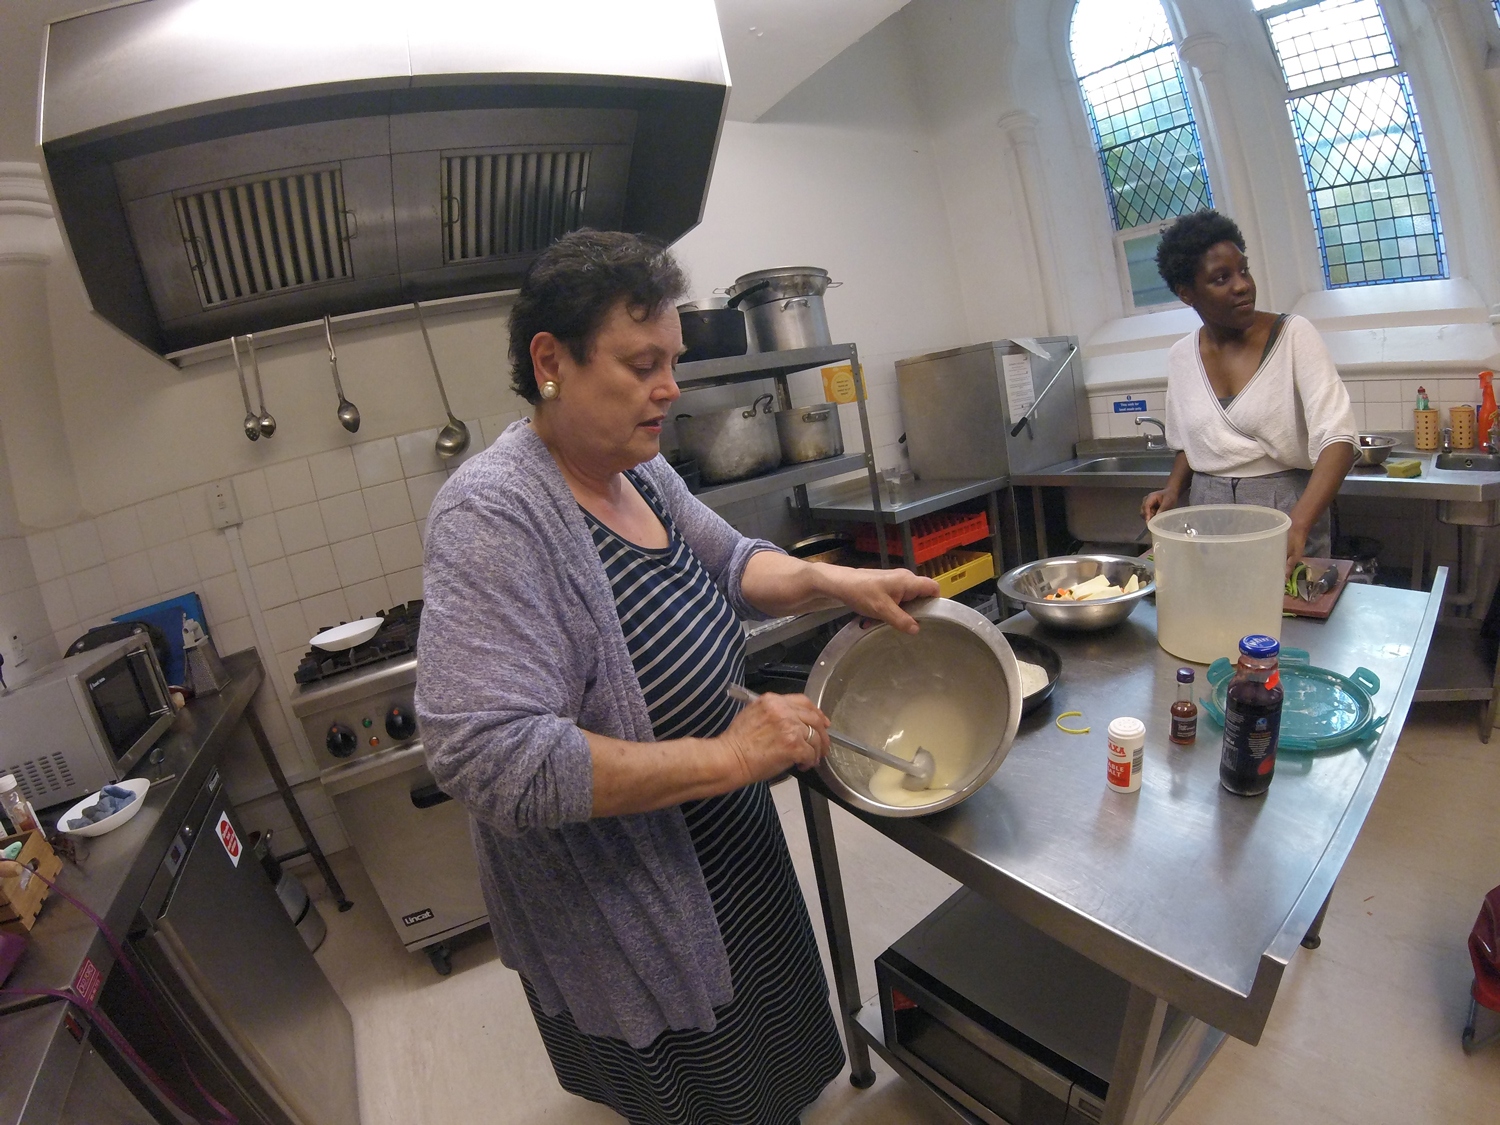 Cooking workshop at the Copleston Centre